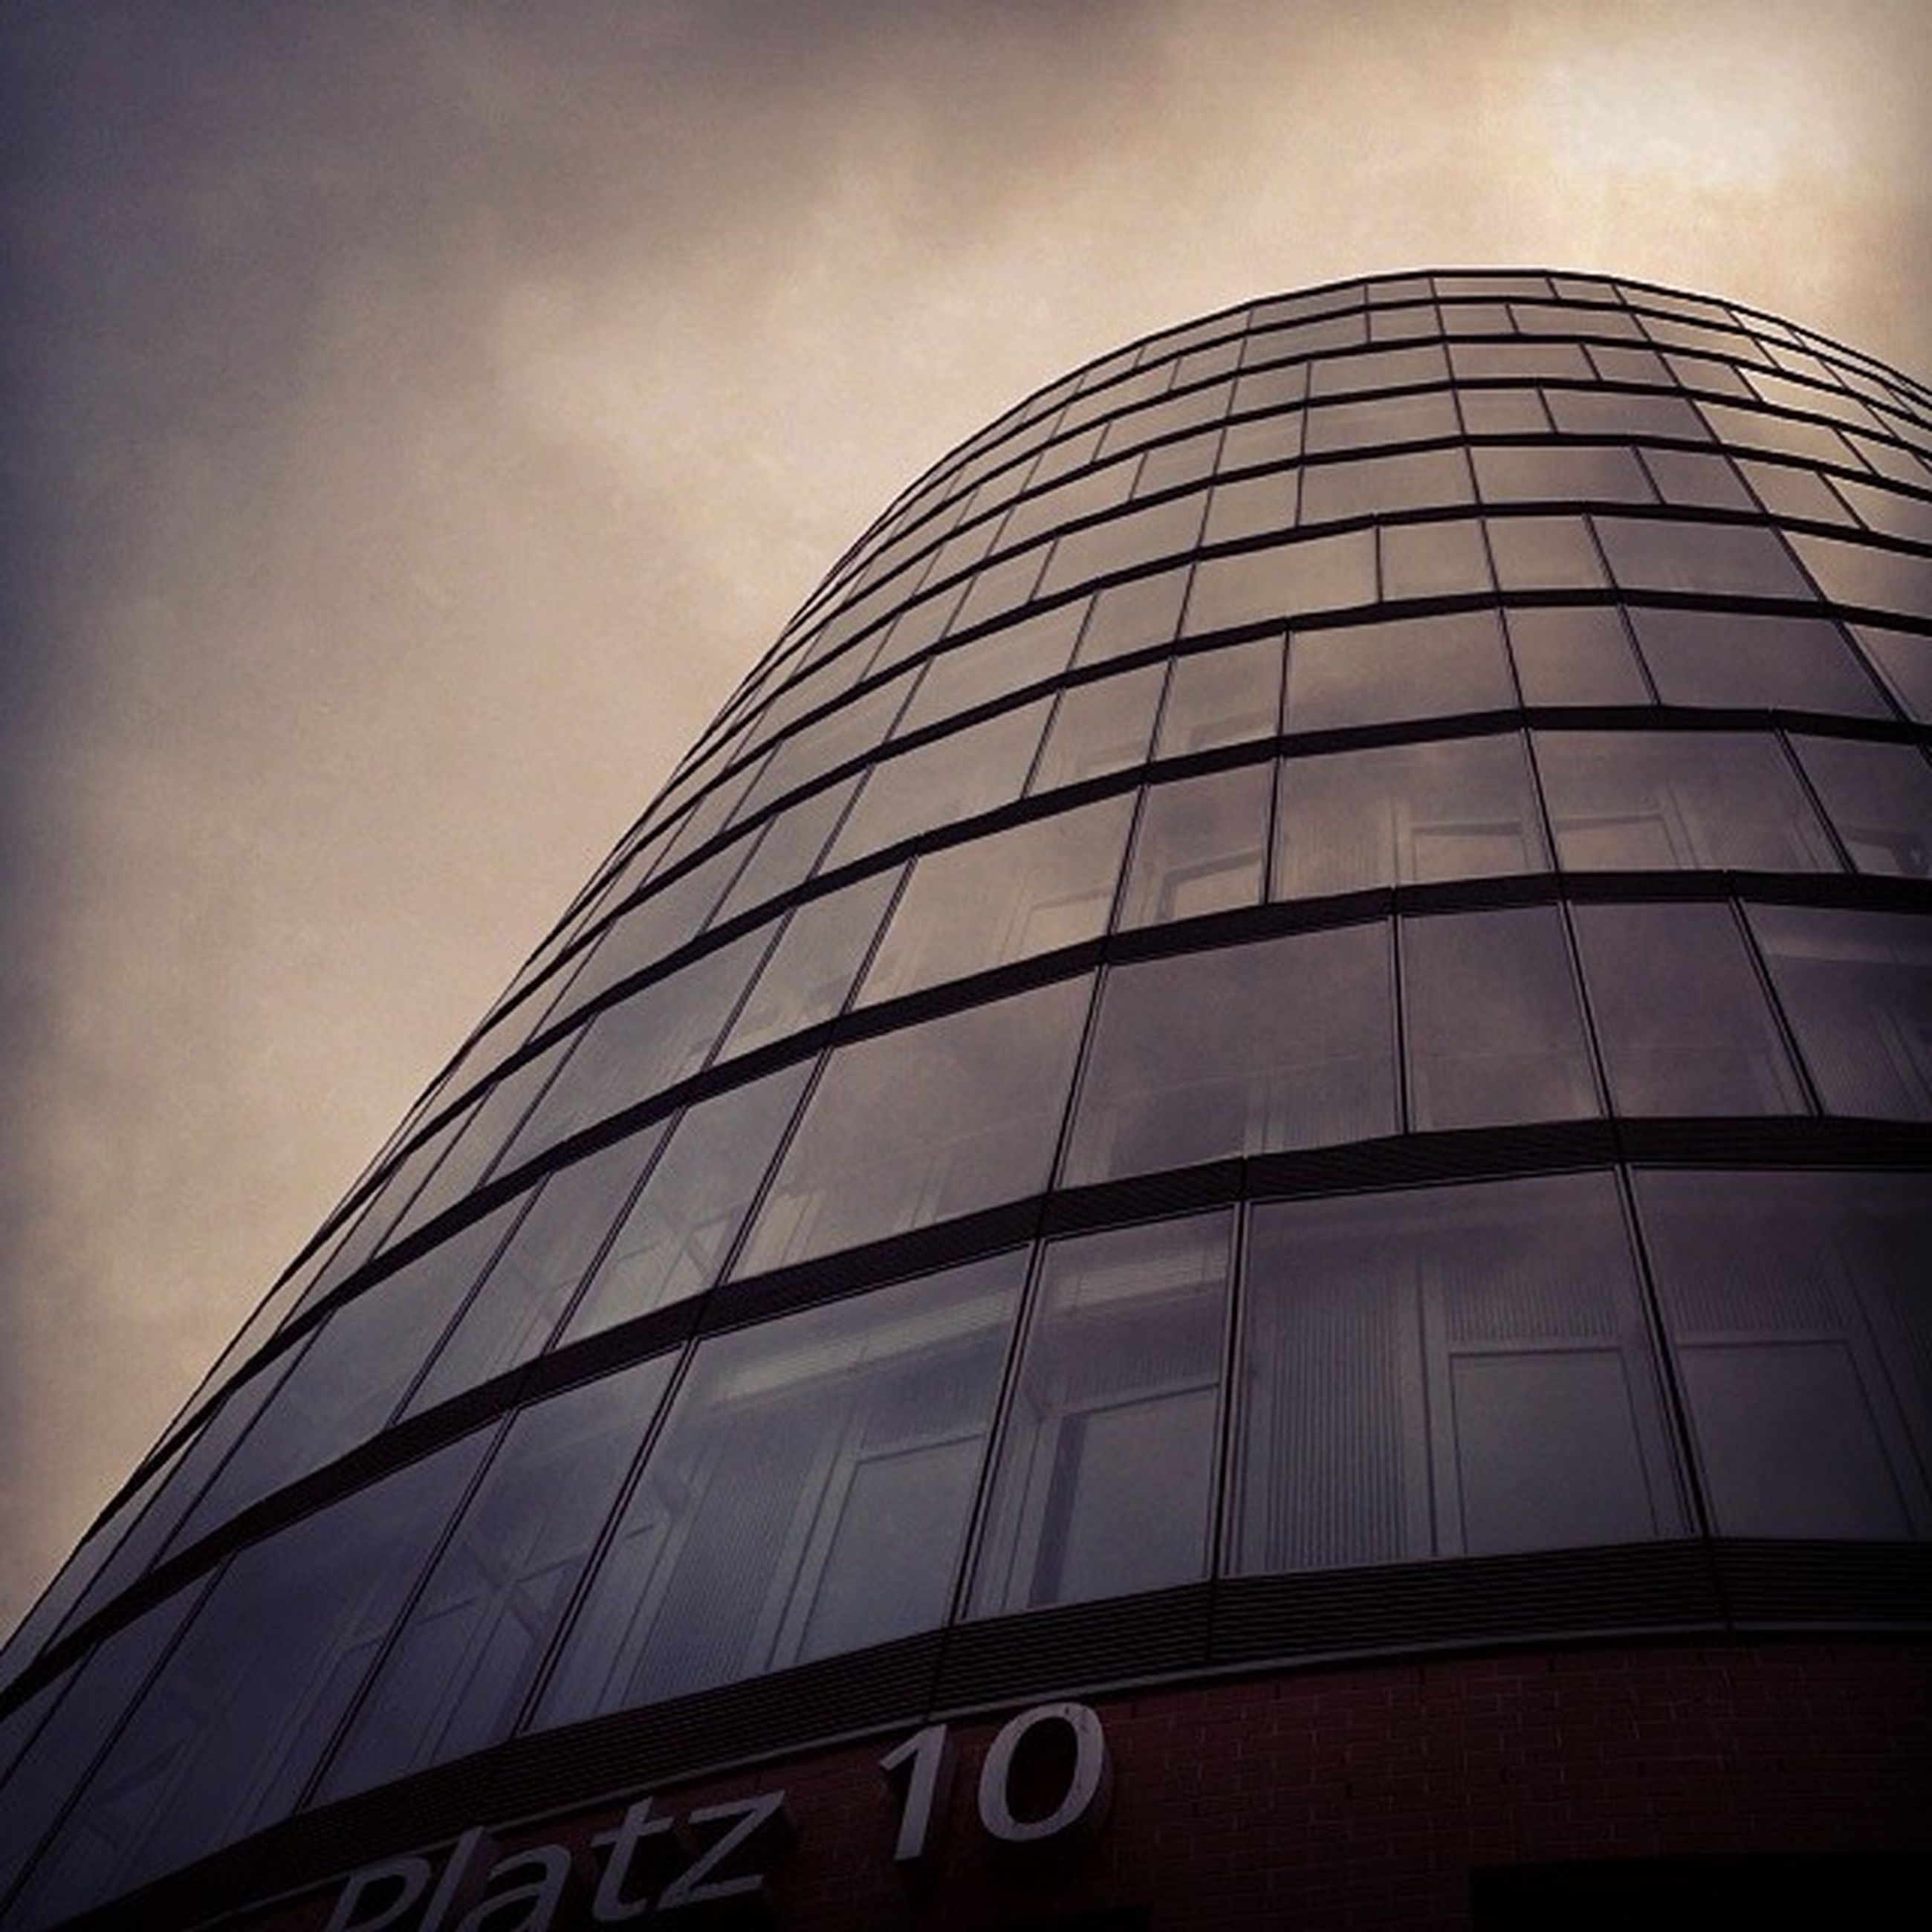 architecture, building exterior, low angle view, built structure, modern, office building, skyscraper, city, tall - high, glass - material, building, sky, tower, reflection, window, no people, day, outdoors, tall, city life